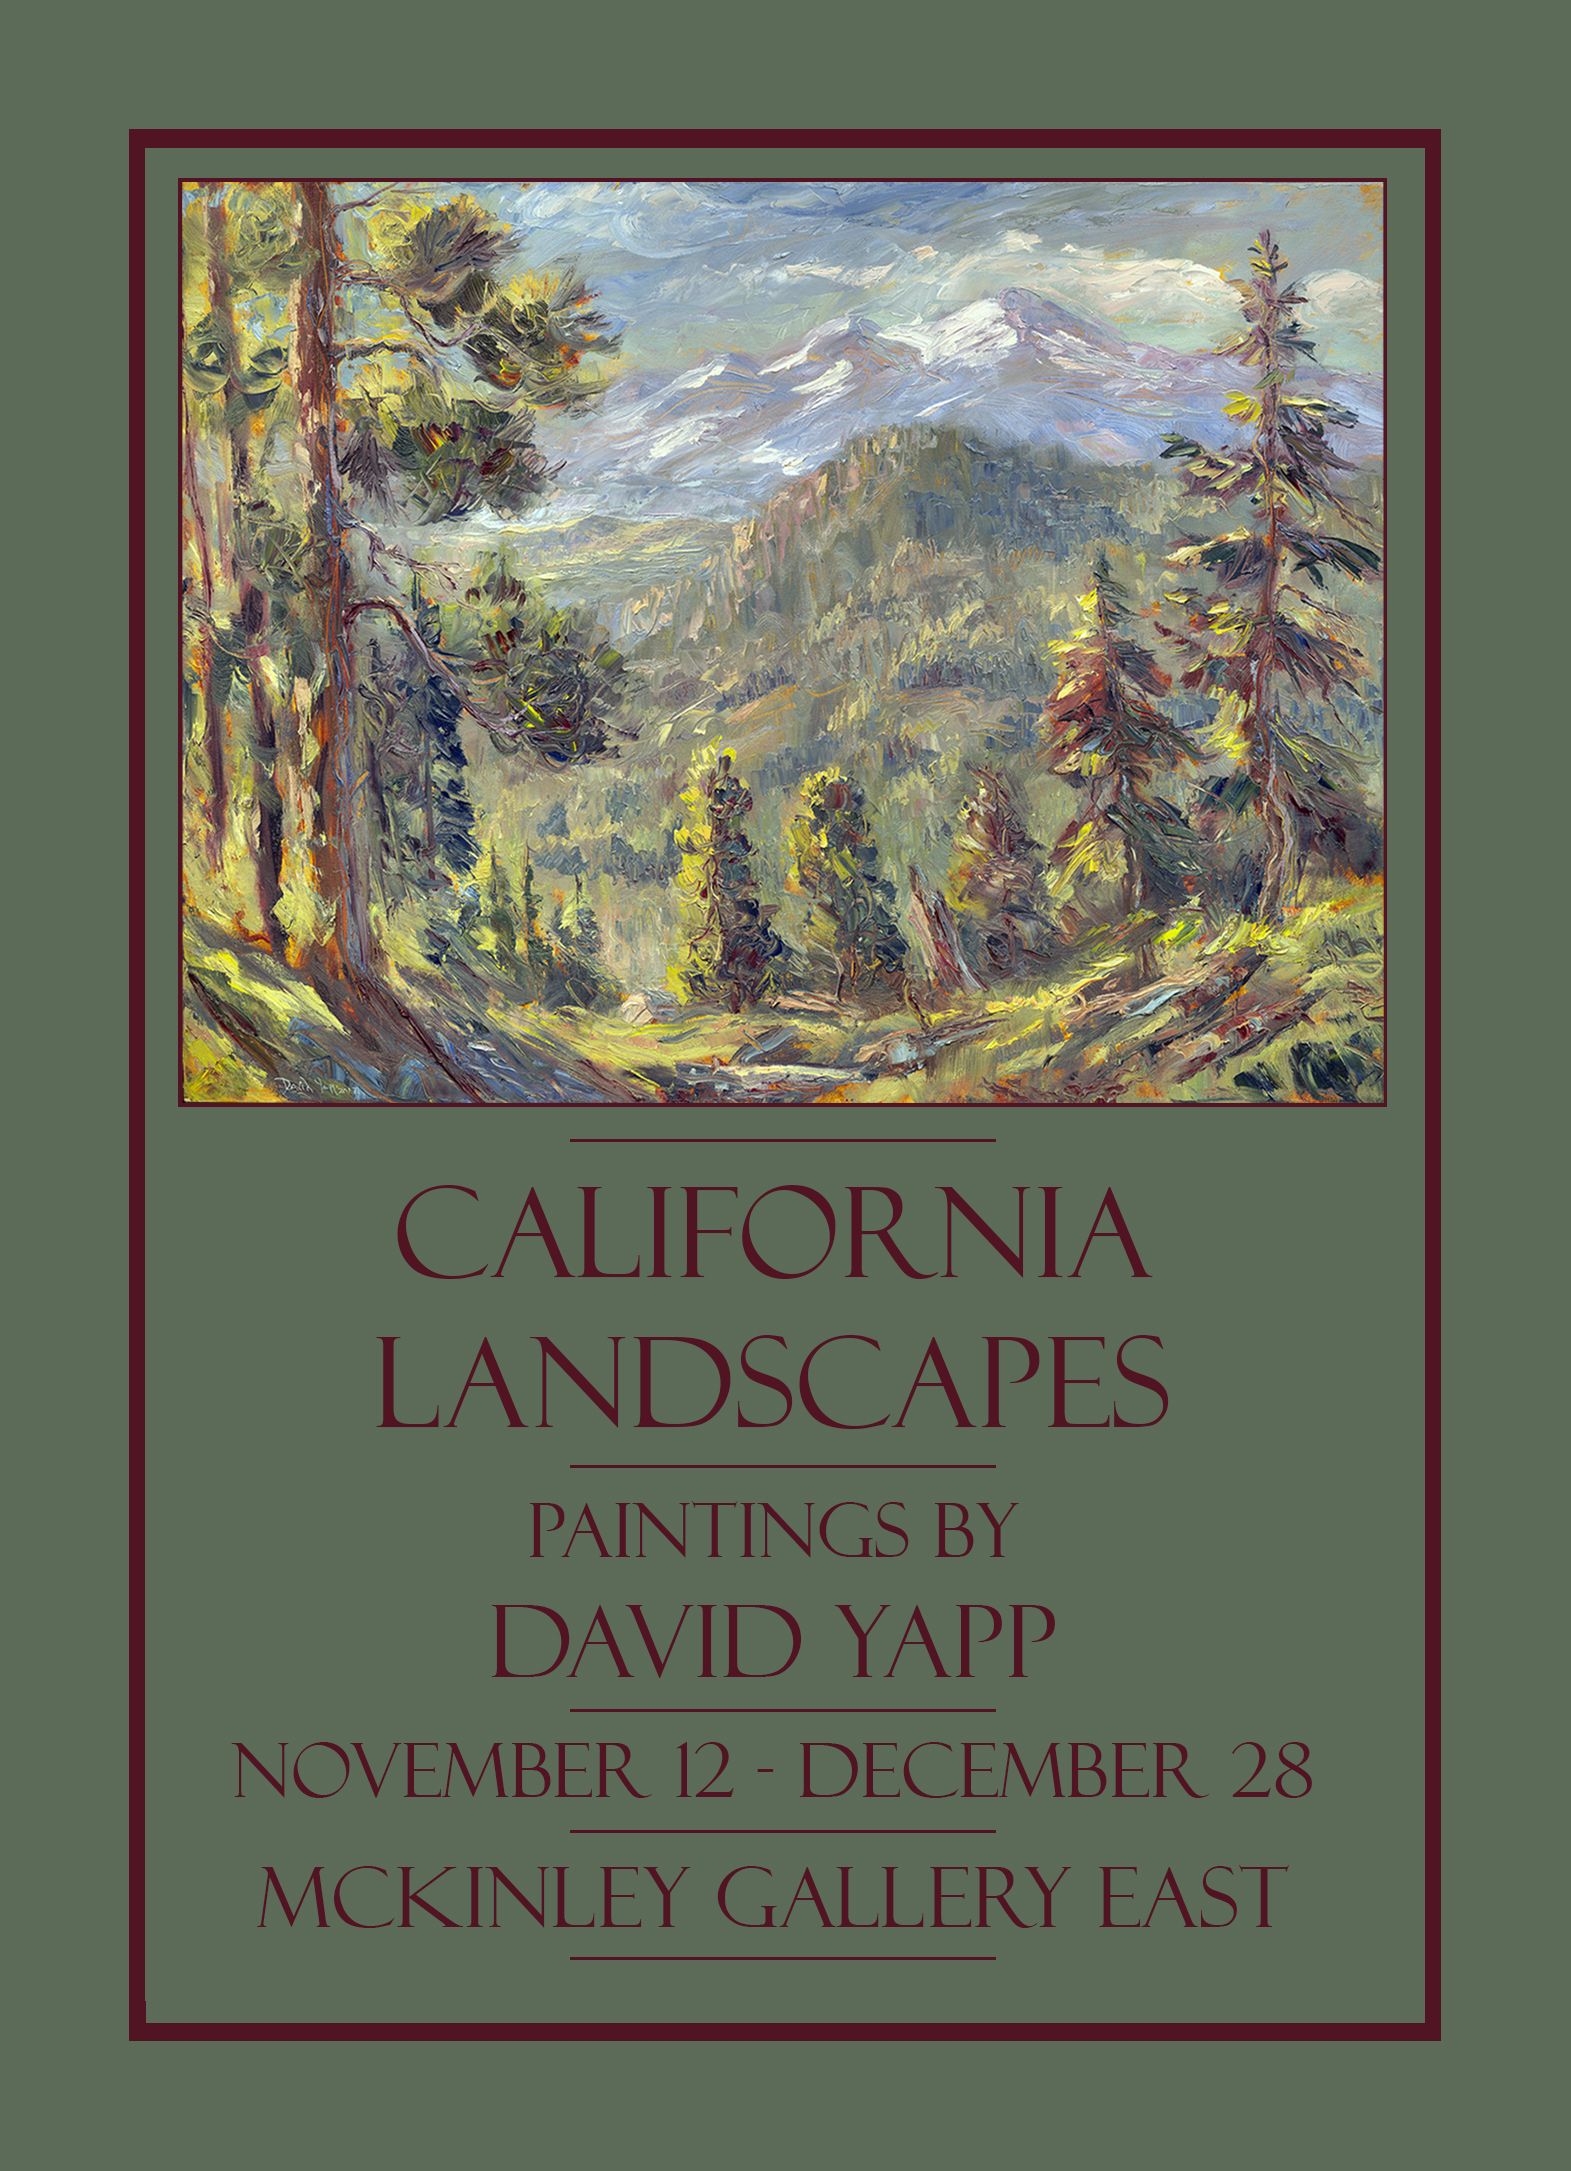 An oil painting of a mountainous forest.  California Landscapes. Paintings by David Yapp. McKinley Gallery East. November 12 to December 28. Reception December 7 from 5 to 7 pm.